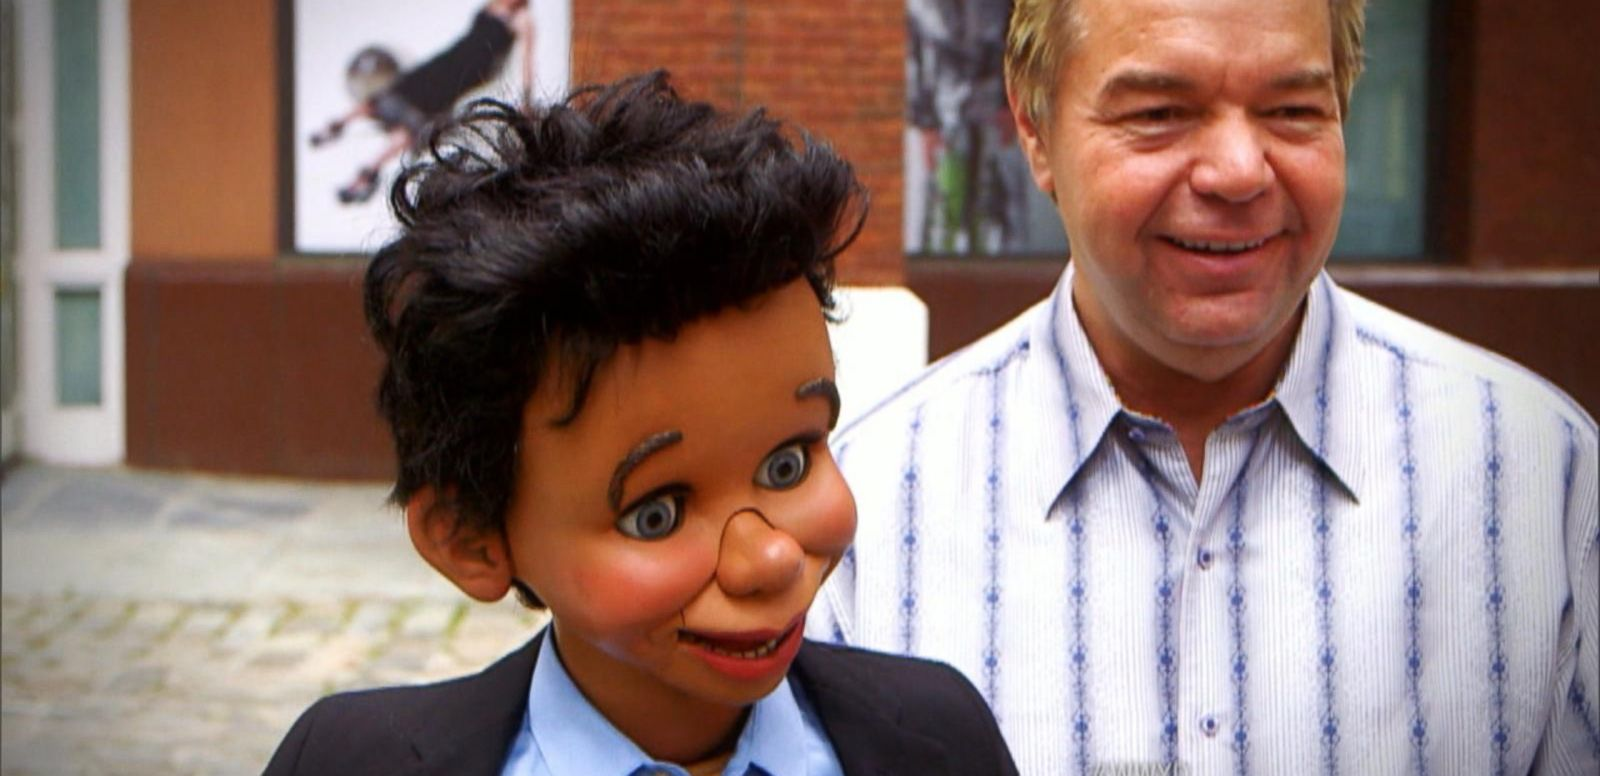 VIDEO: What Would You Do: Rude Ventriloquist Berates Pedestrians